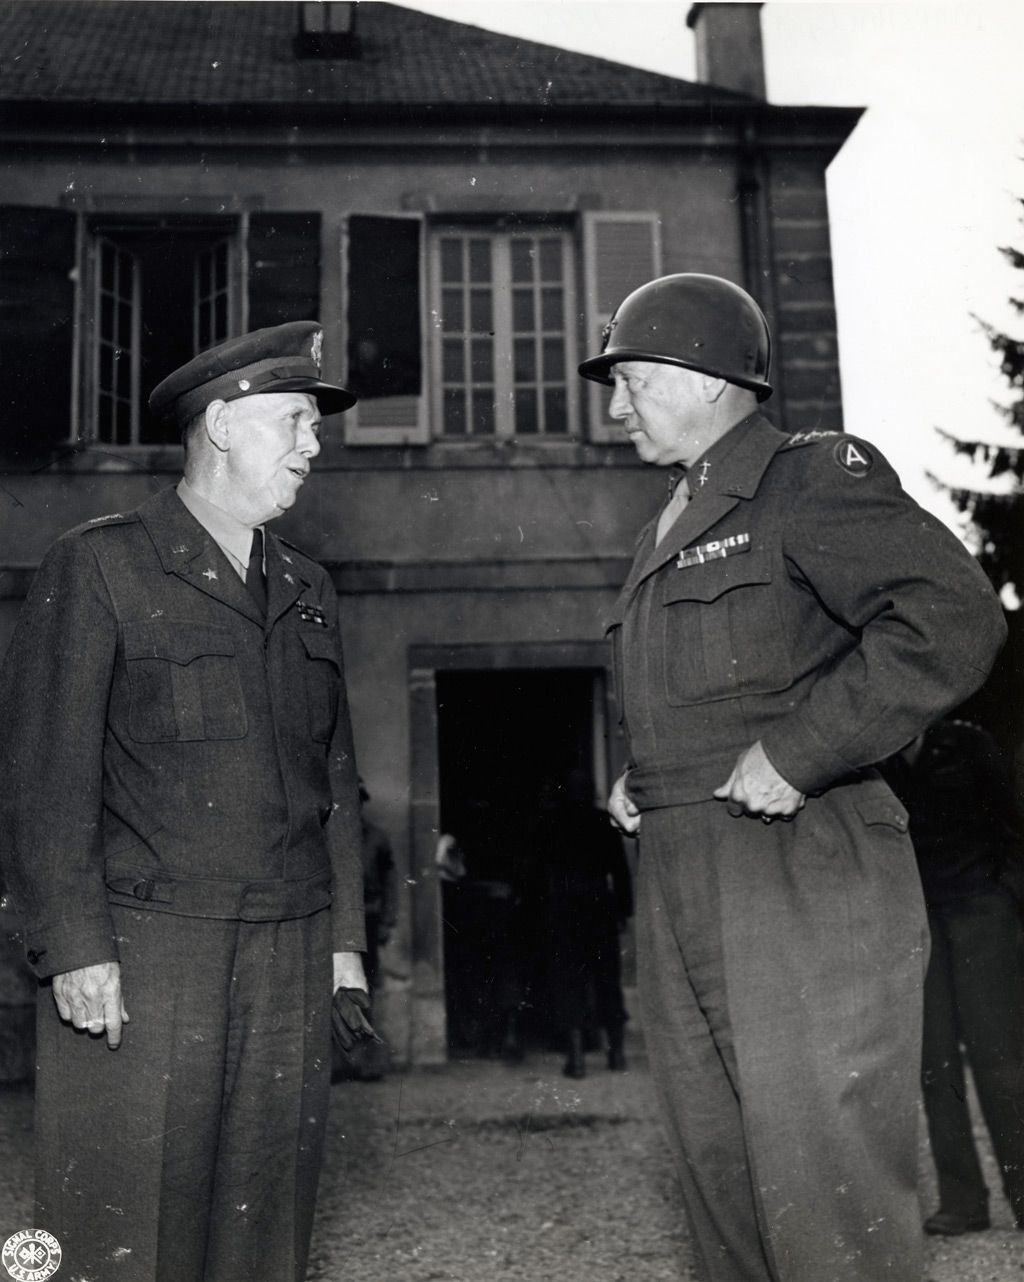 General george c marshall quotes - Generals George C Marshall And George S Patton Jr Apparently Oct